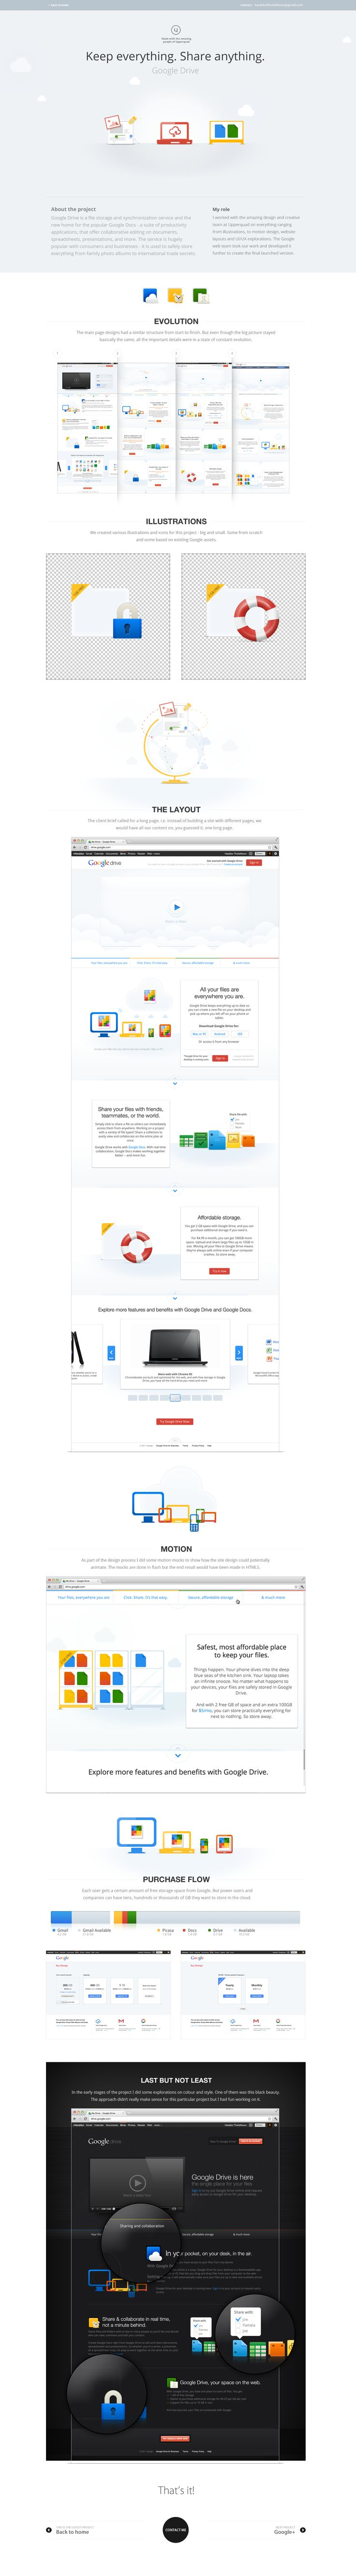 case study on google See doubleclick in action with these digital marketing case studies from doubleclick advertisers and publishers.